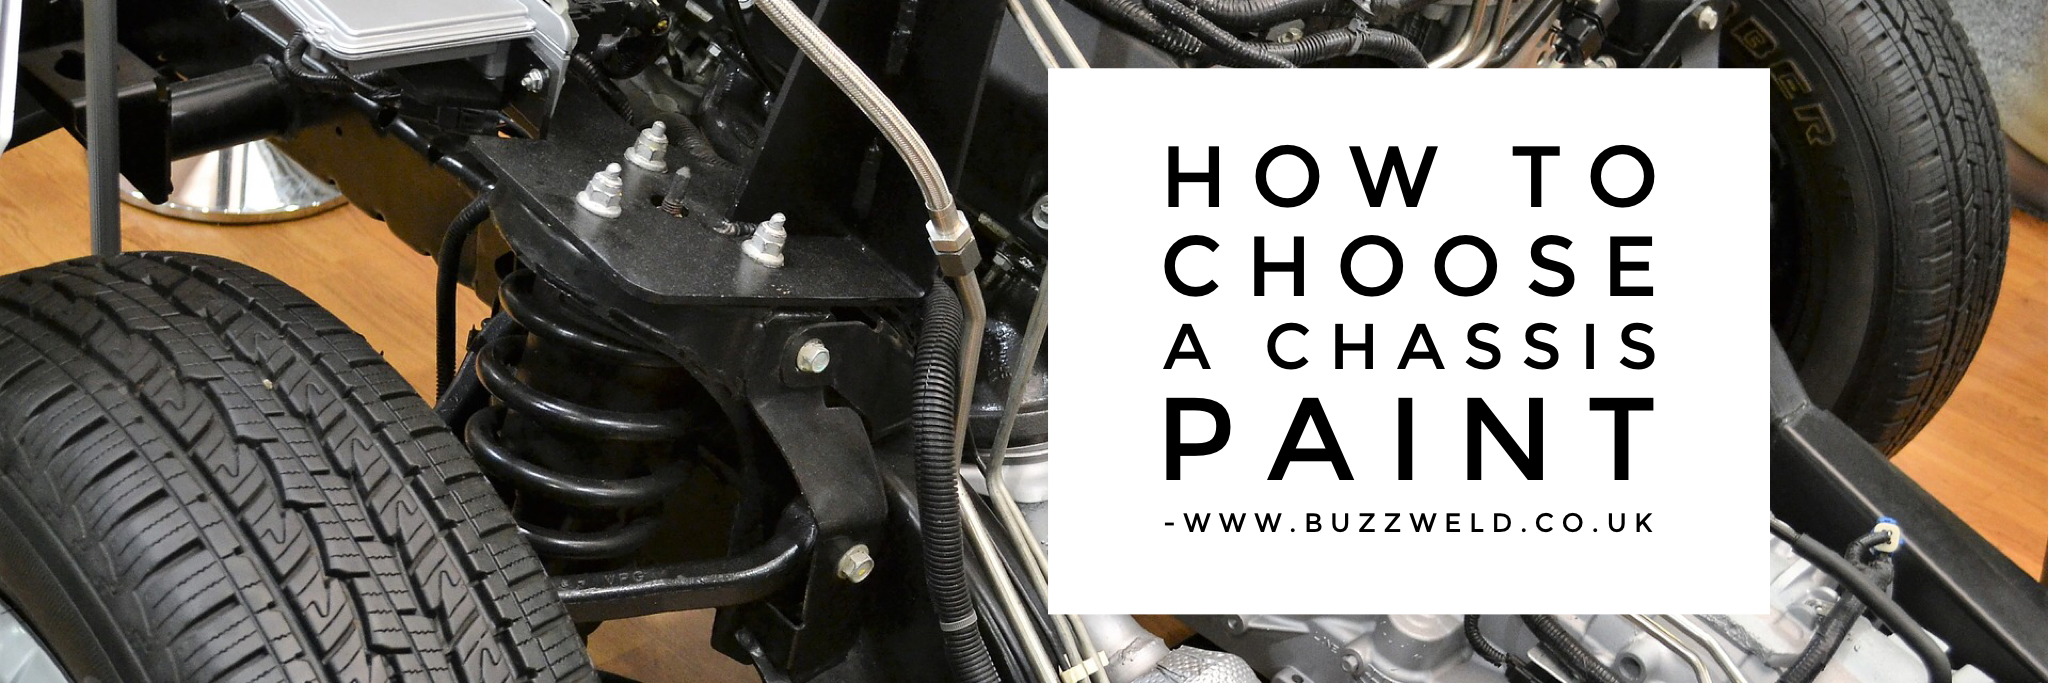 How To Choose A Chassis Paint